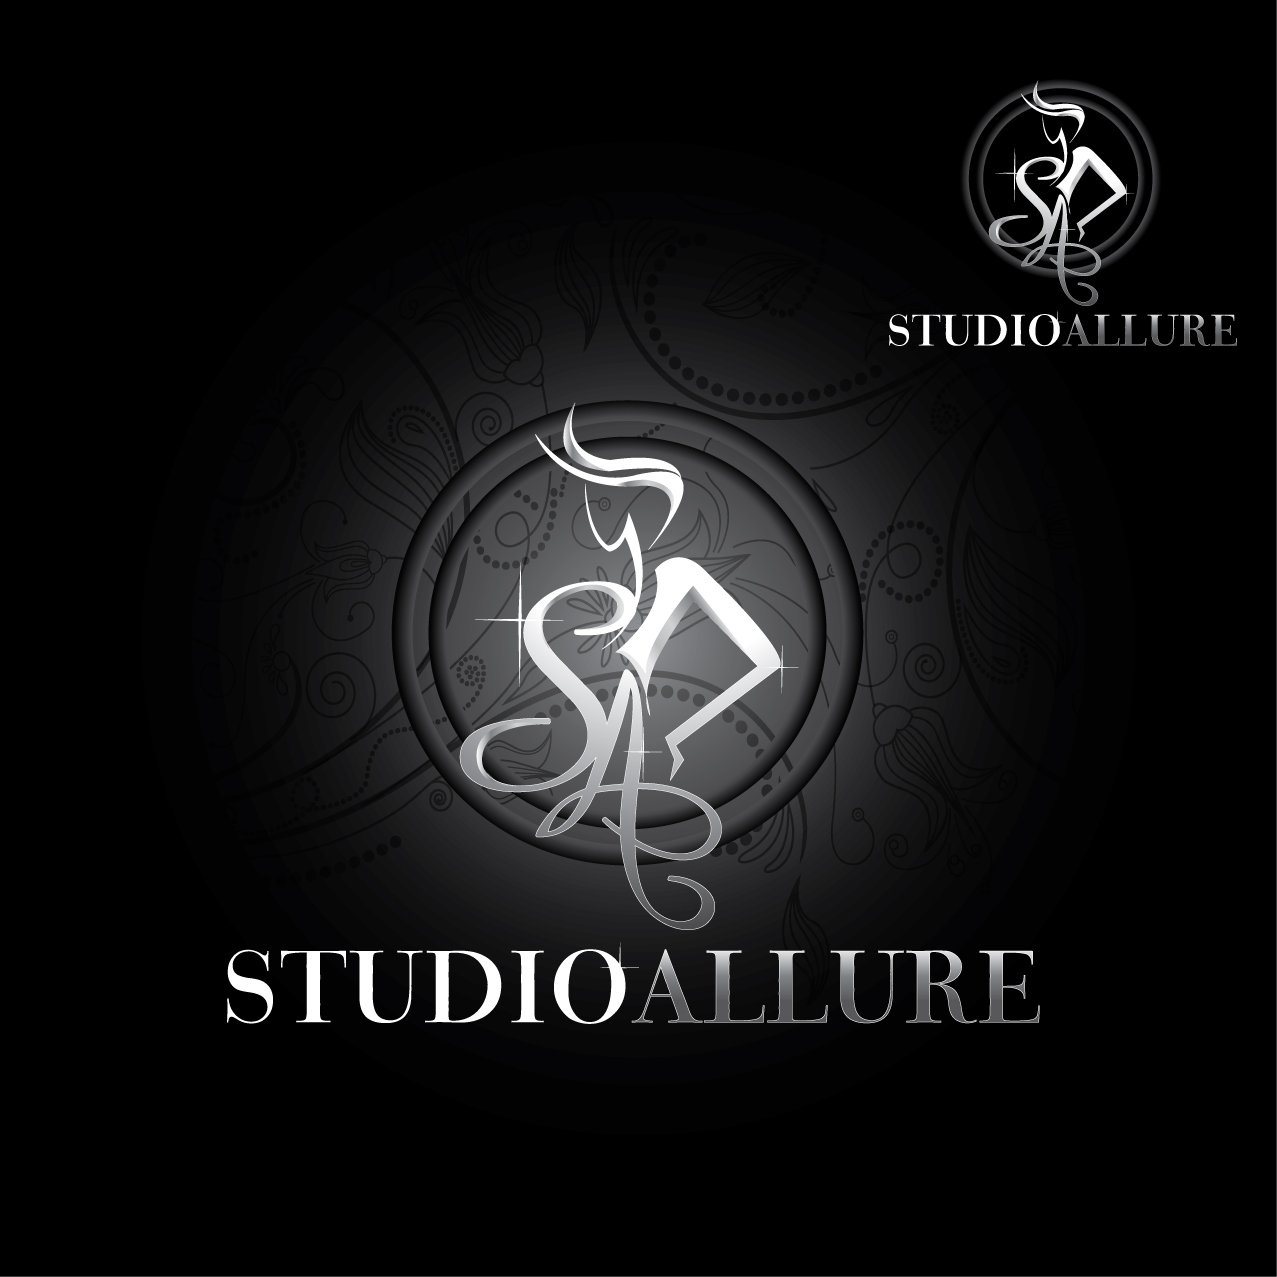 Logo Design by stormbighit - Entry No. 99 in the Logo Design Contest Logo Design Needed for Exciting New Company Studio Allure.